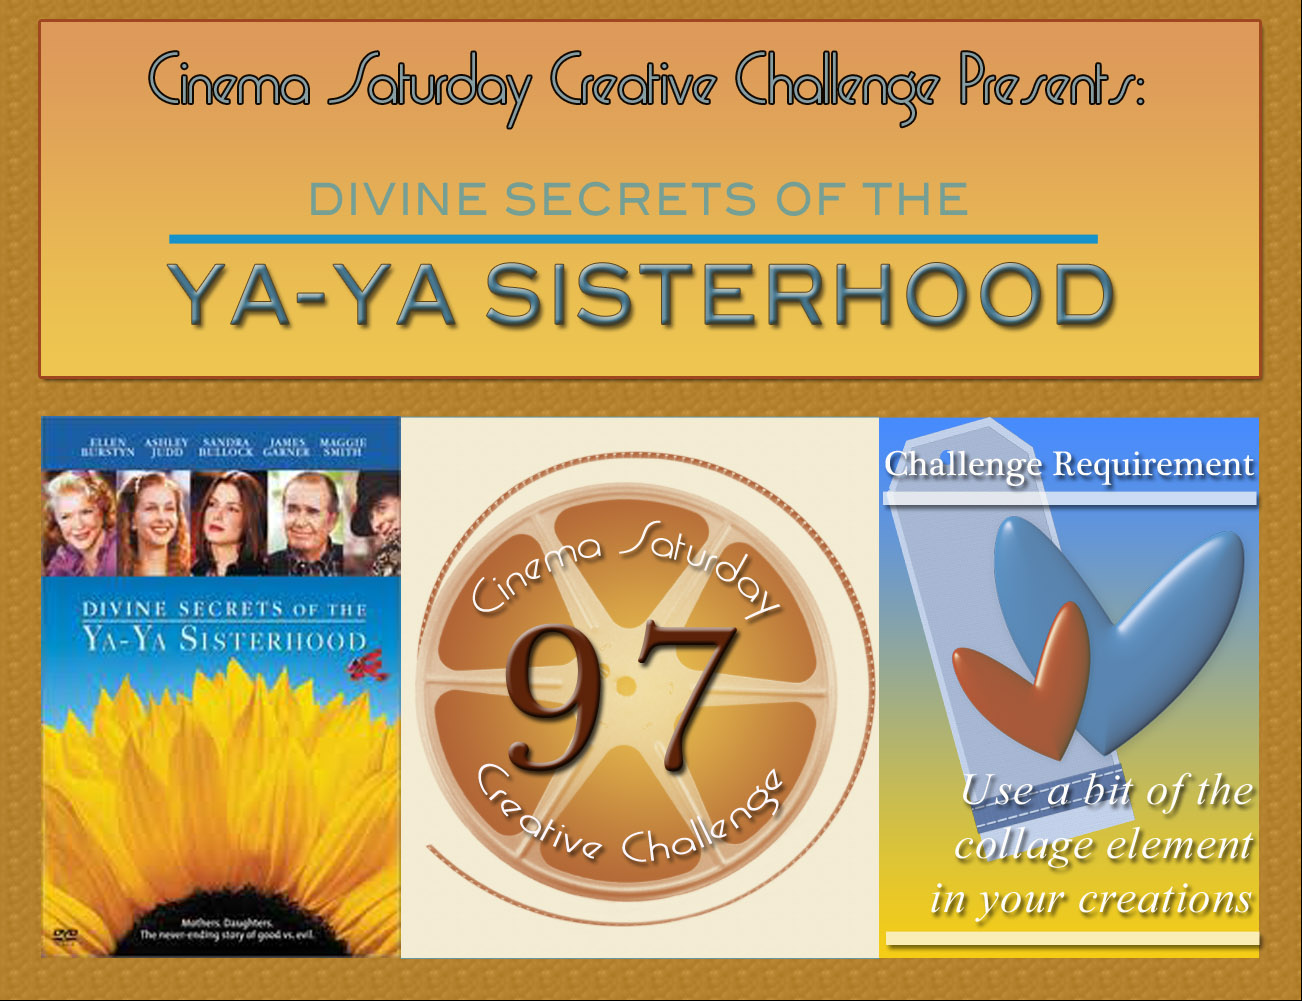 the divine secrets of the ya Divine secrets of the ya-ya sisterhood screenwriter callie khouri makes her directorial debut with this adaptation of a pair of popular novels by author rebecca wells, divine secrets of the ya-ya sisterhood and little altars everywhere .